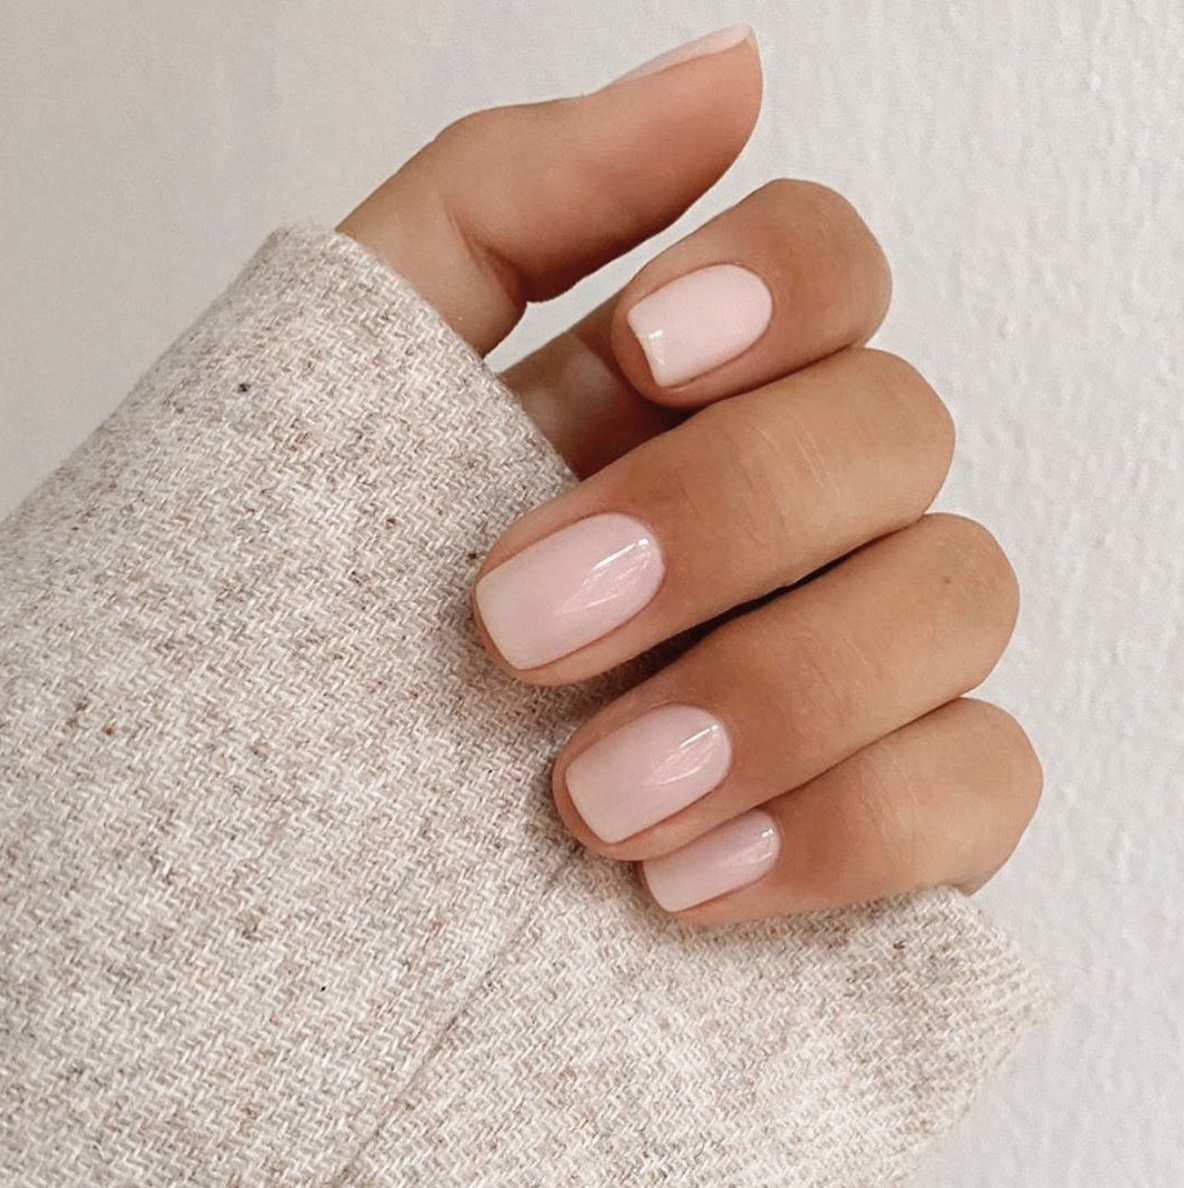 25 Professional Nails Ideas for Work   Simple elegant